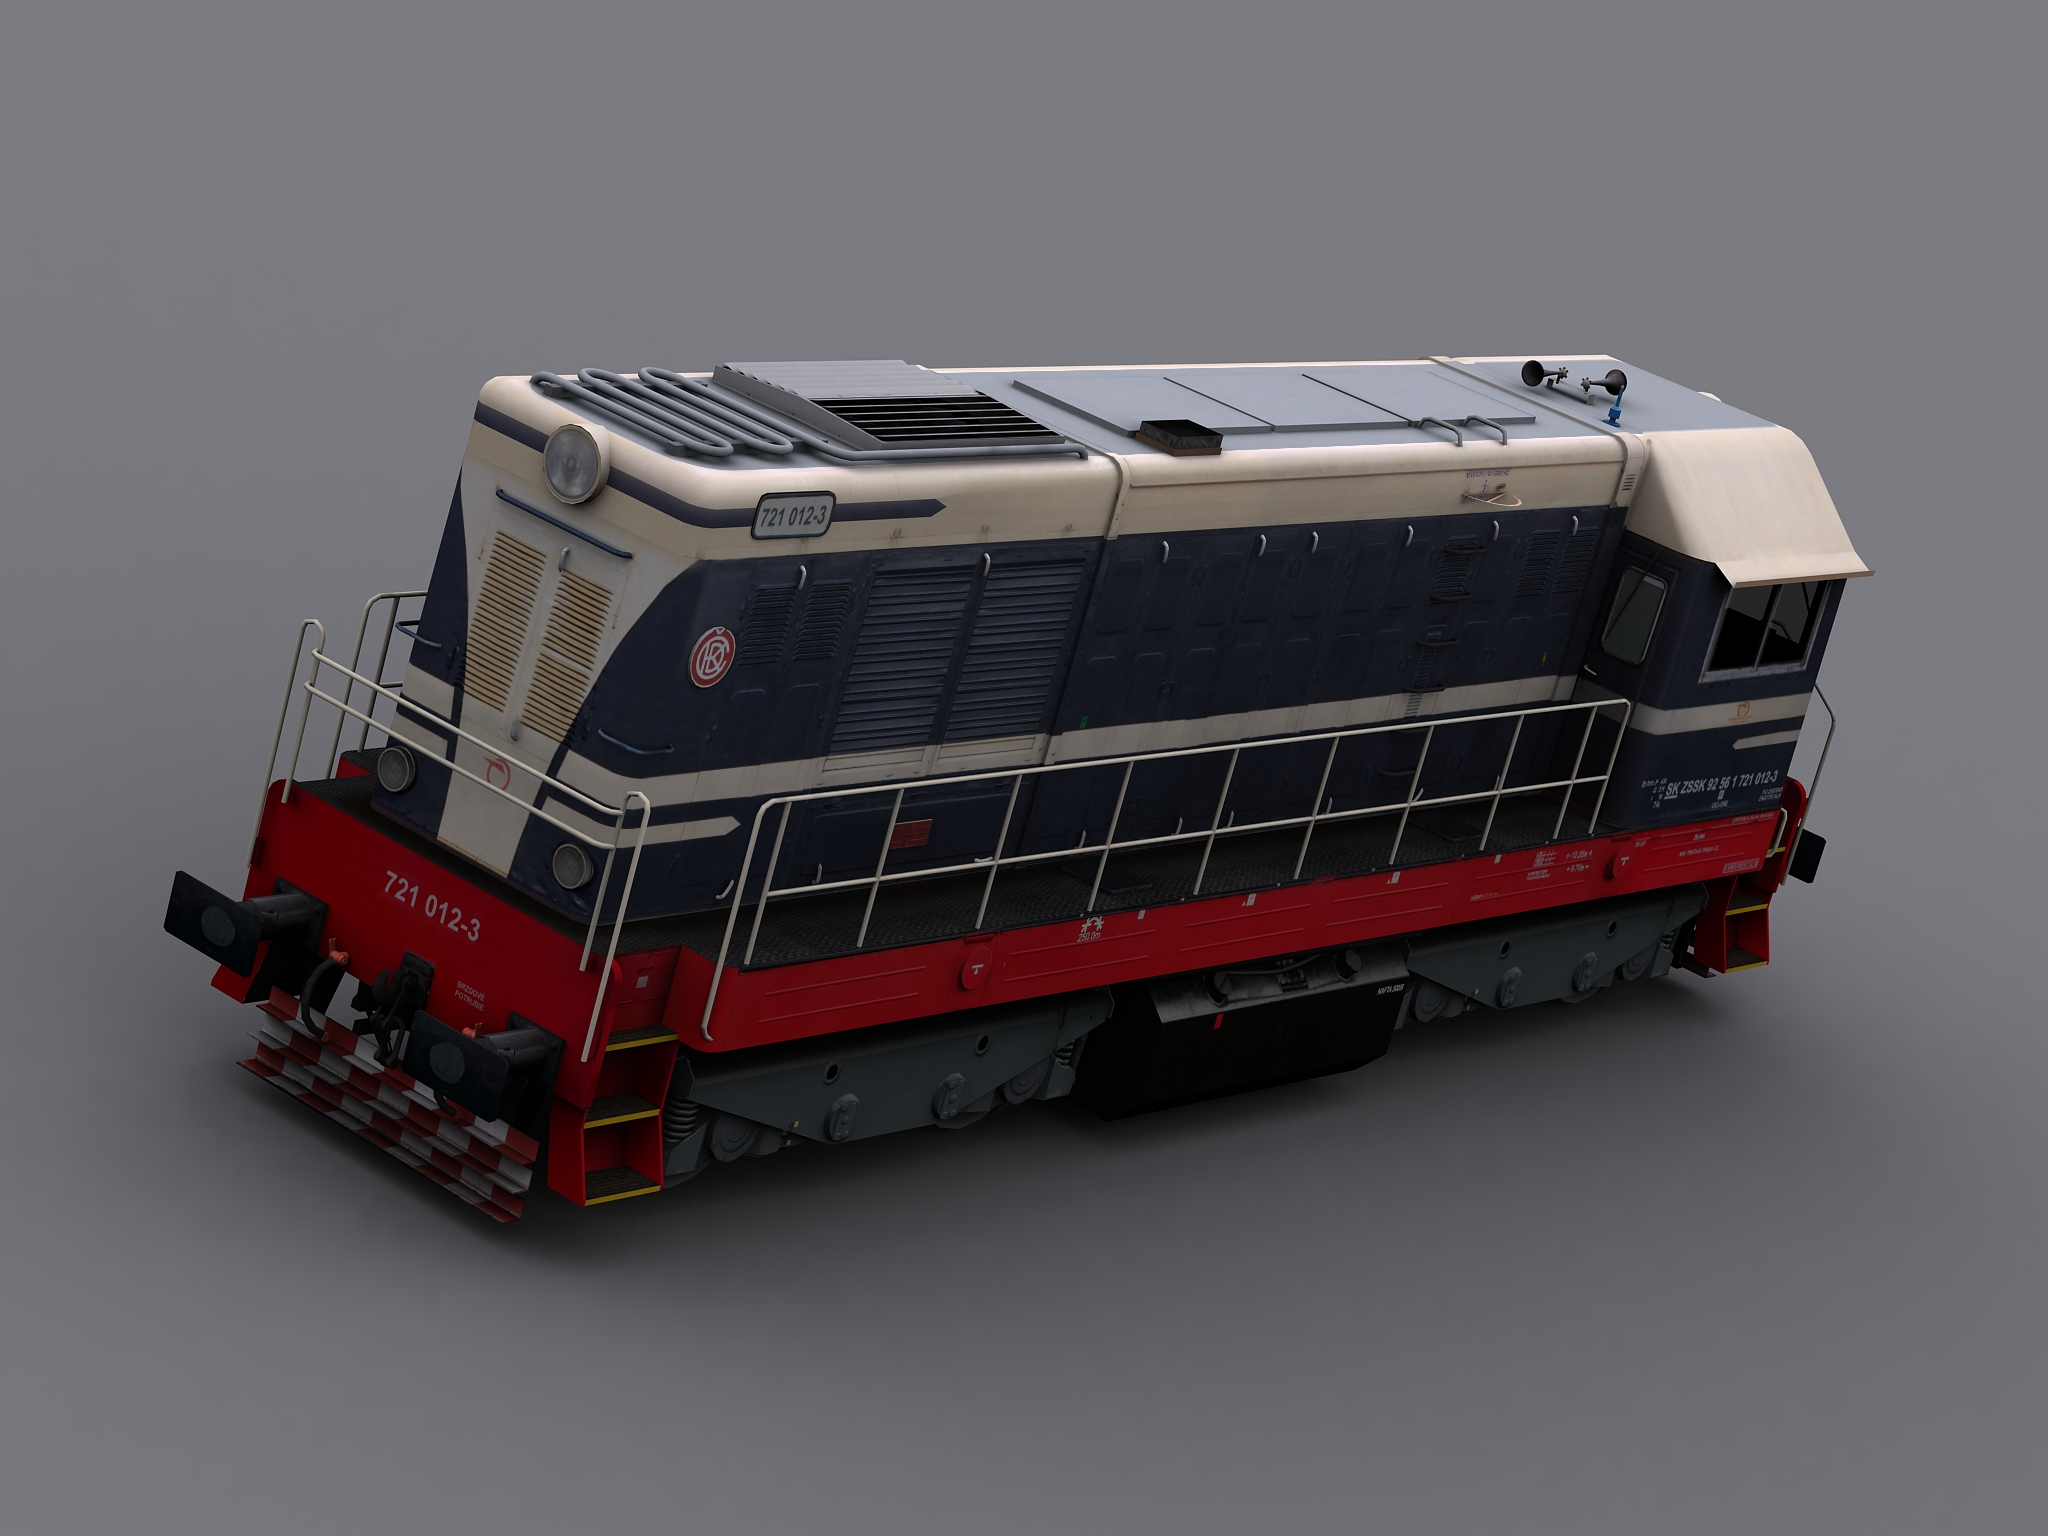 Pikku MSTS models, addons, repaints and more